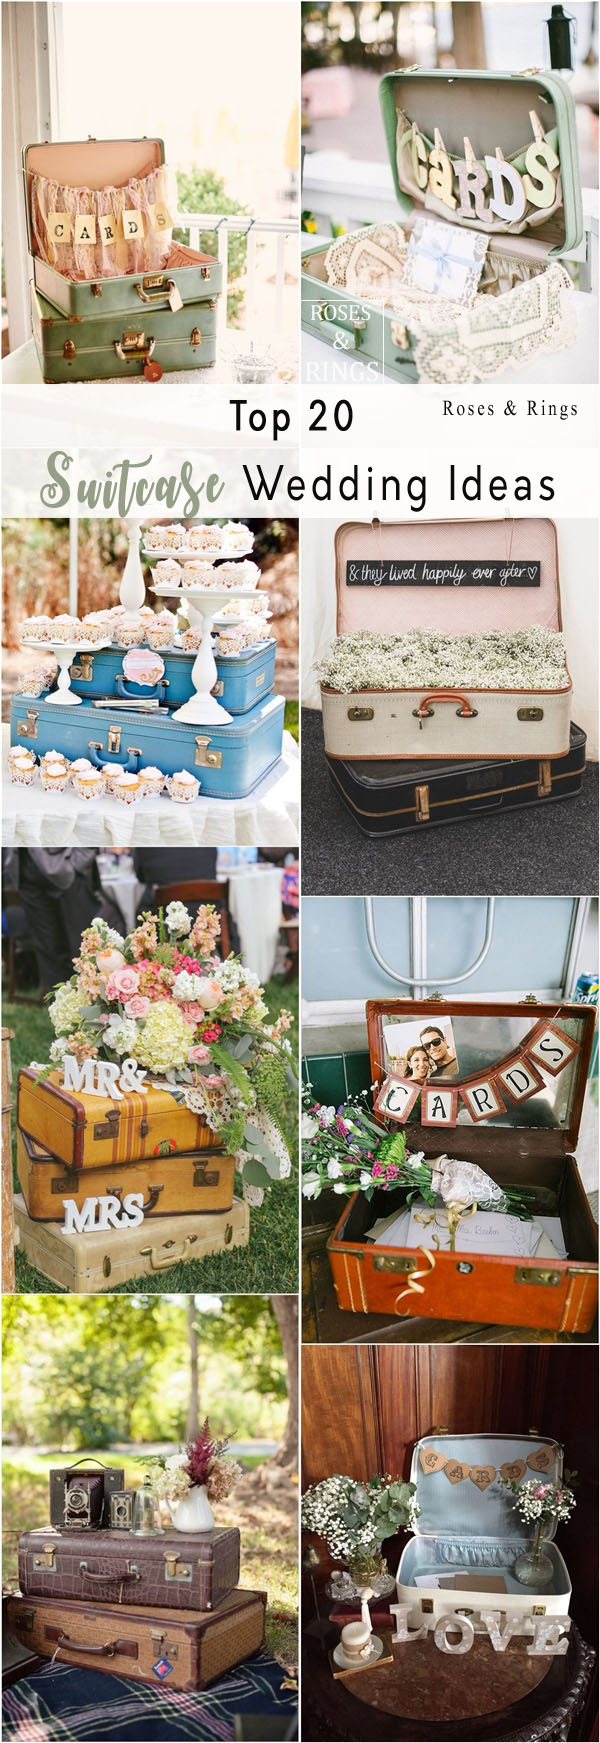 Top 20 Vintage Suitcase Wedding Decor Ideas | Roses & Rings